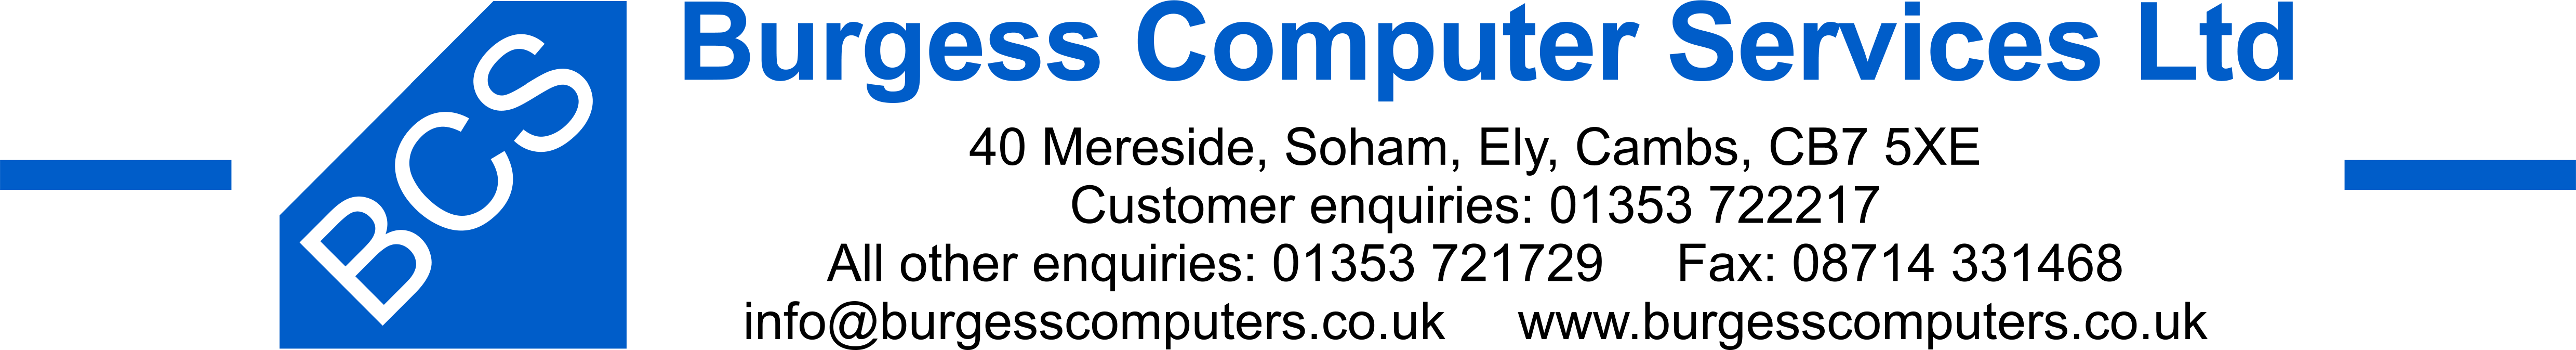 Burgess Computer Services Ltd